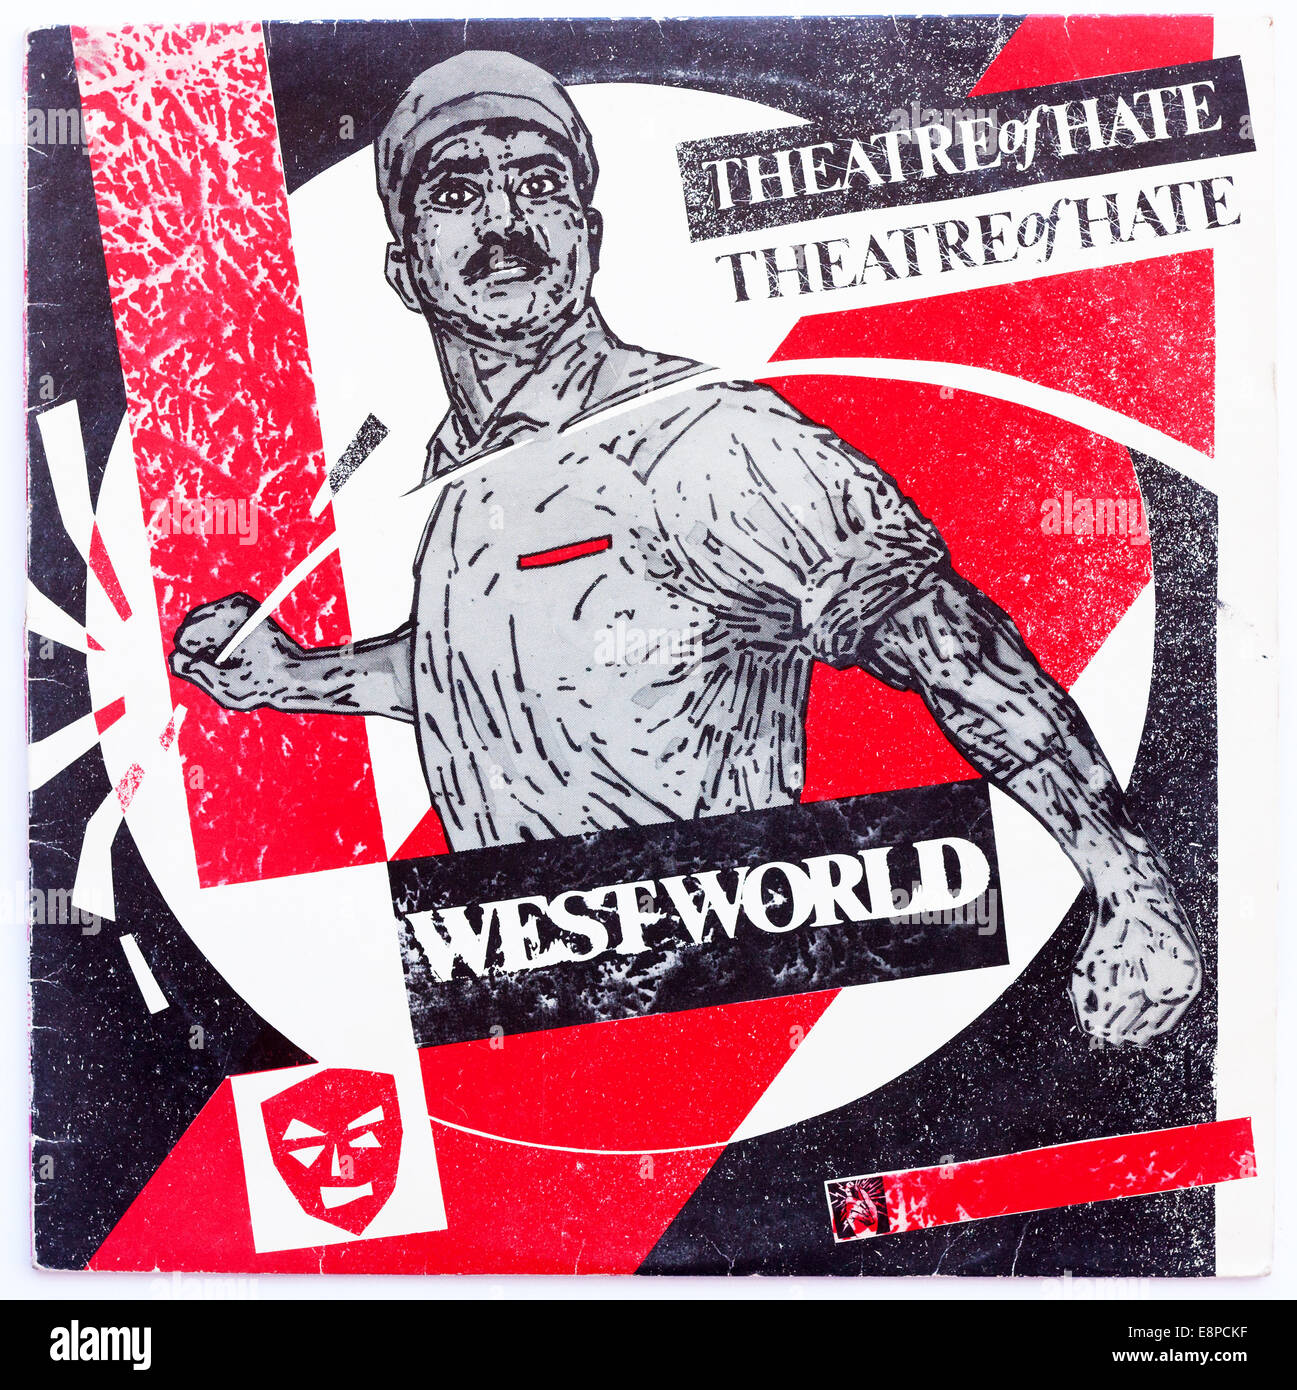 Cover art for Theatre Of Hate - Westworld, 1982 vinyl album on Burning Rome Records - Stock Image